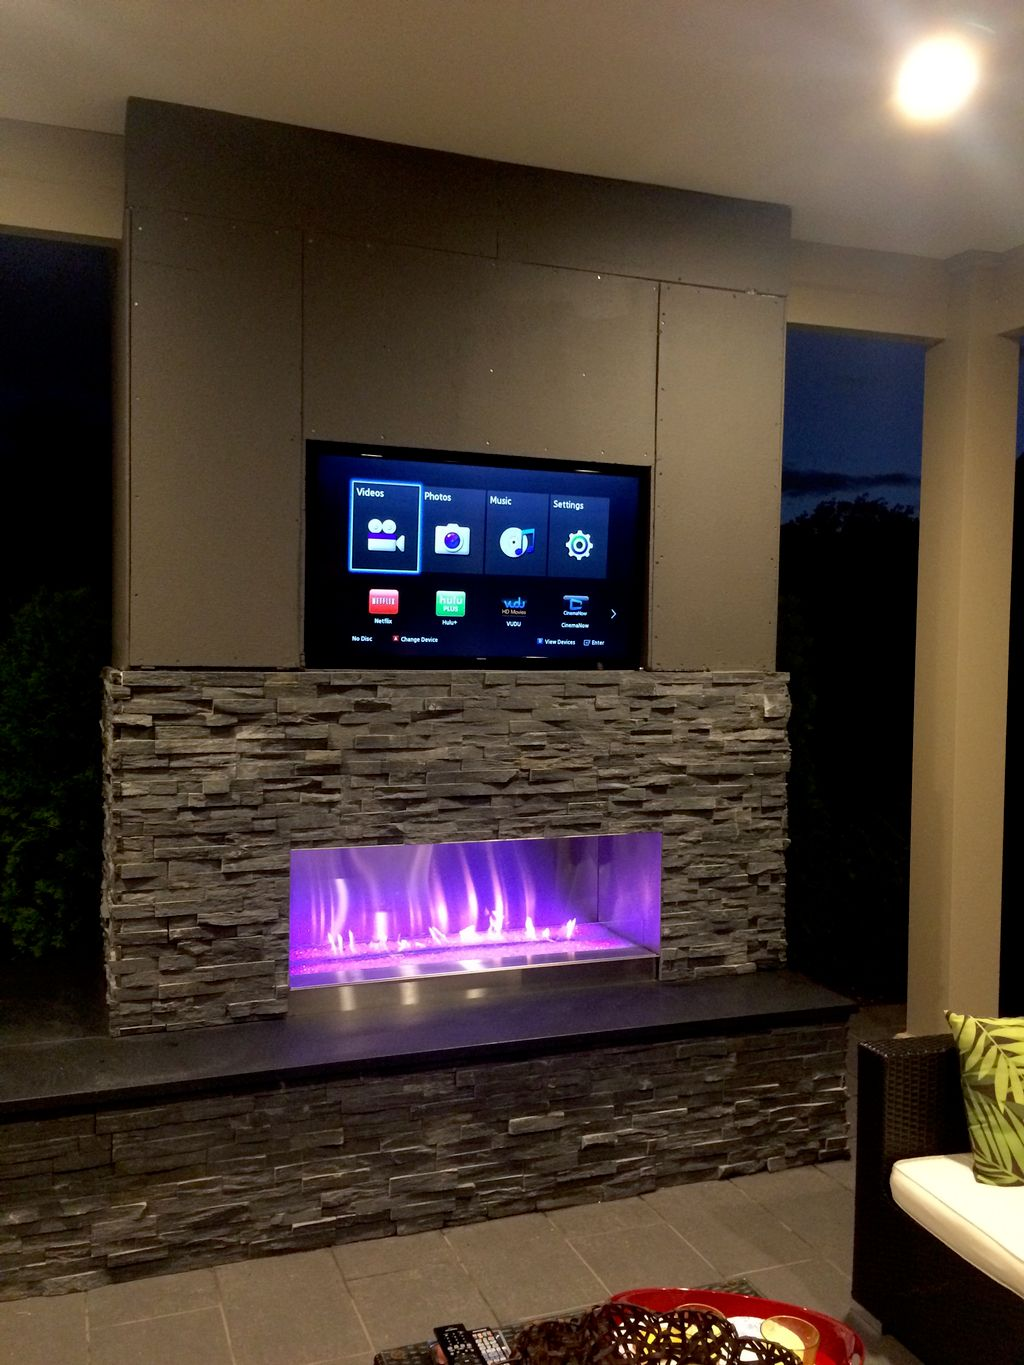 Outdoor patio fireplace TV